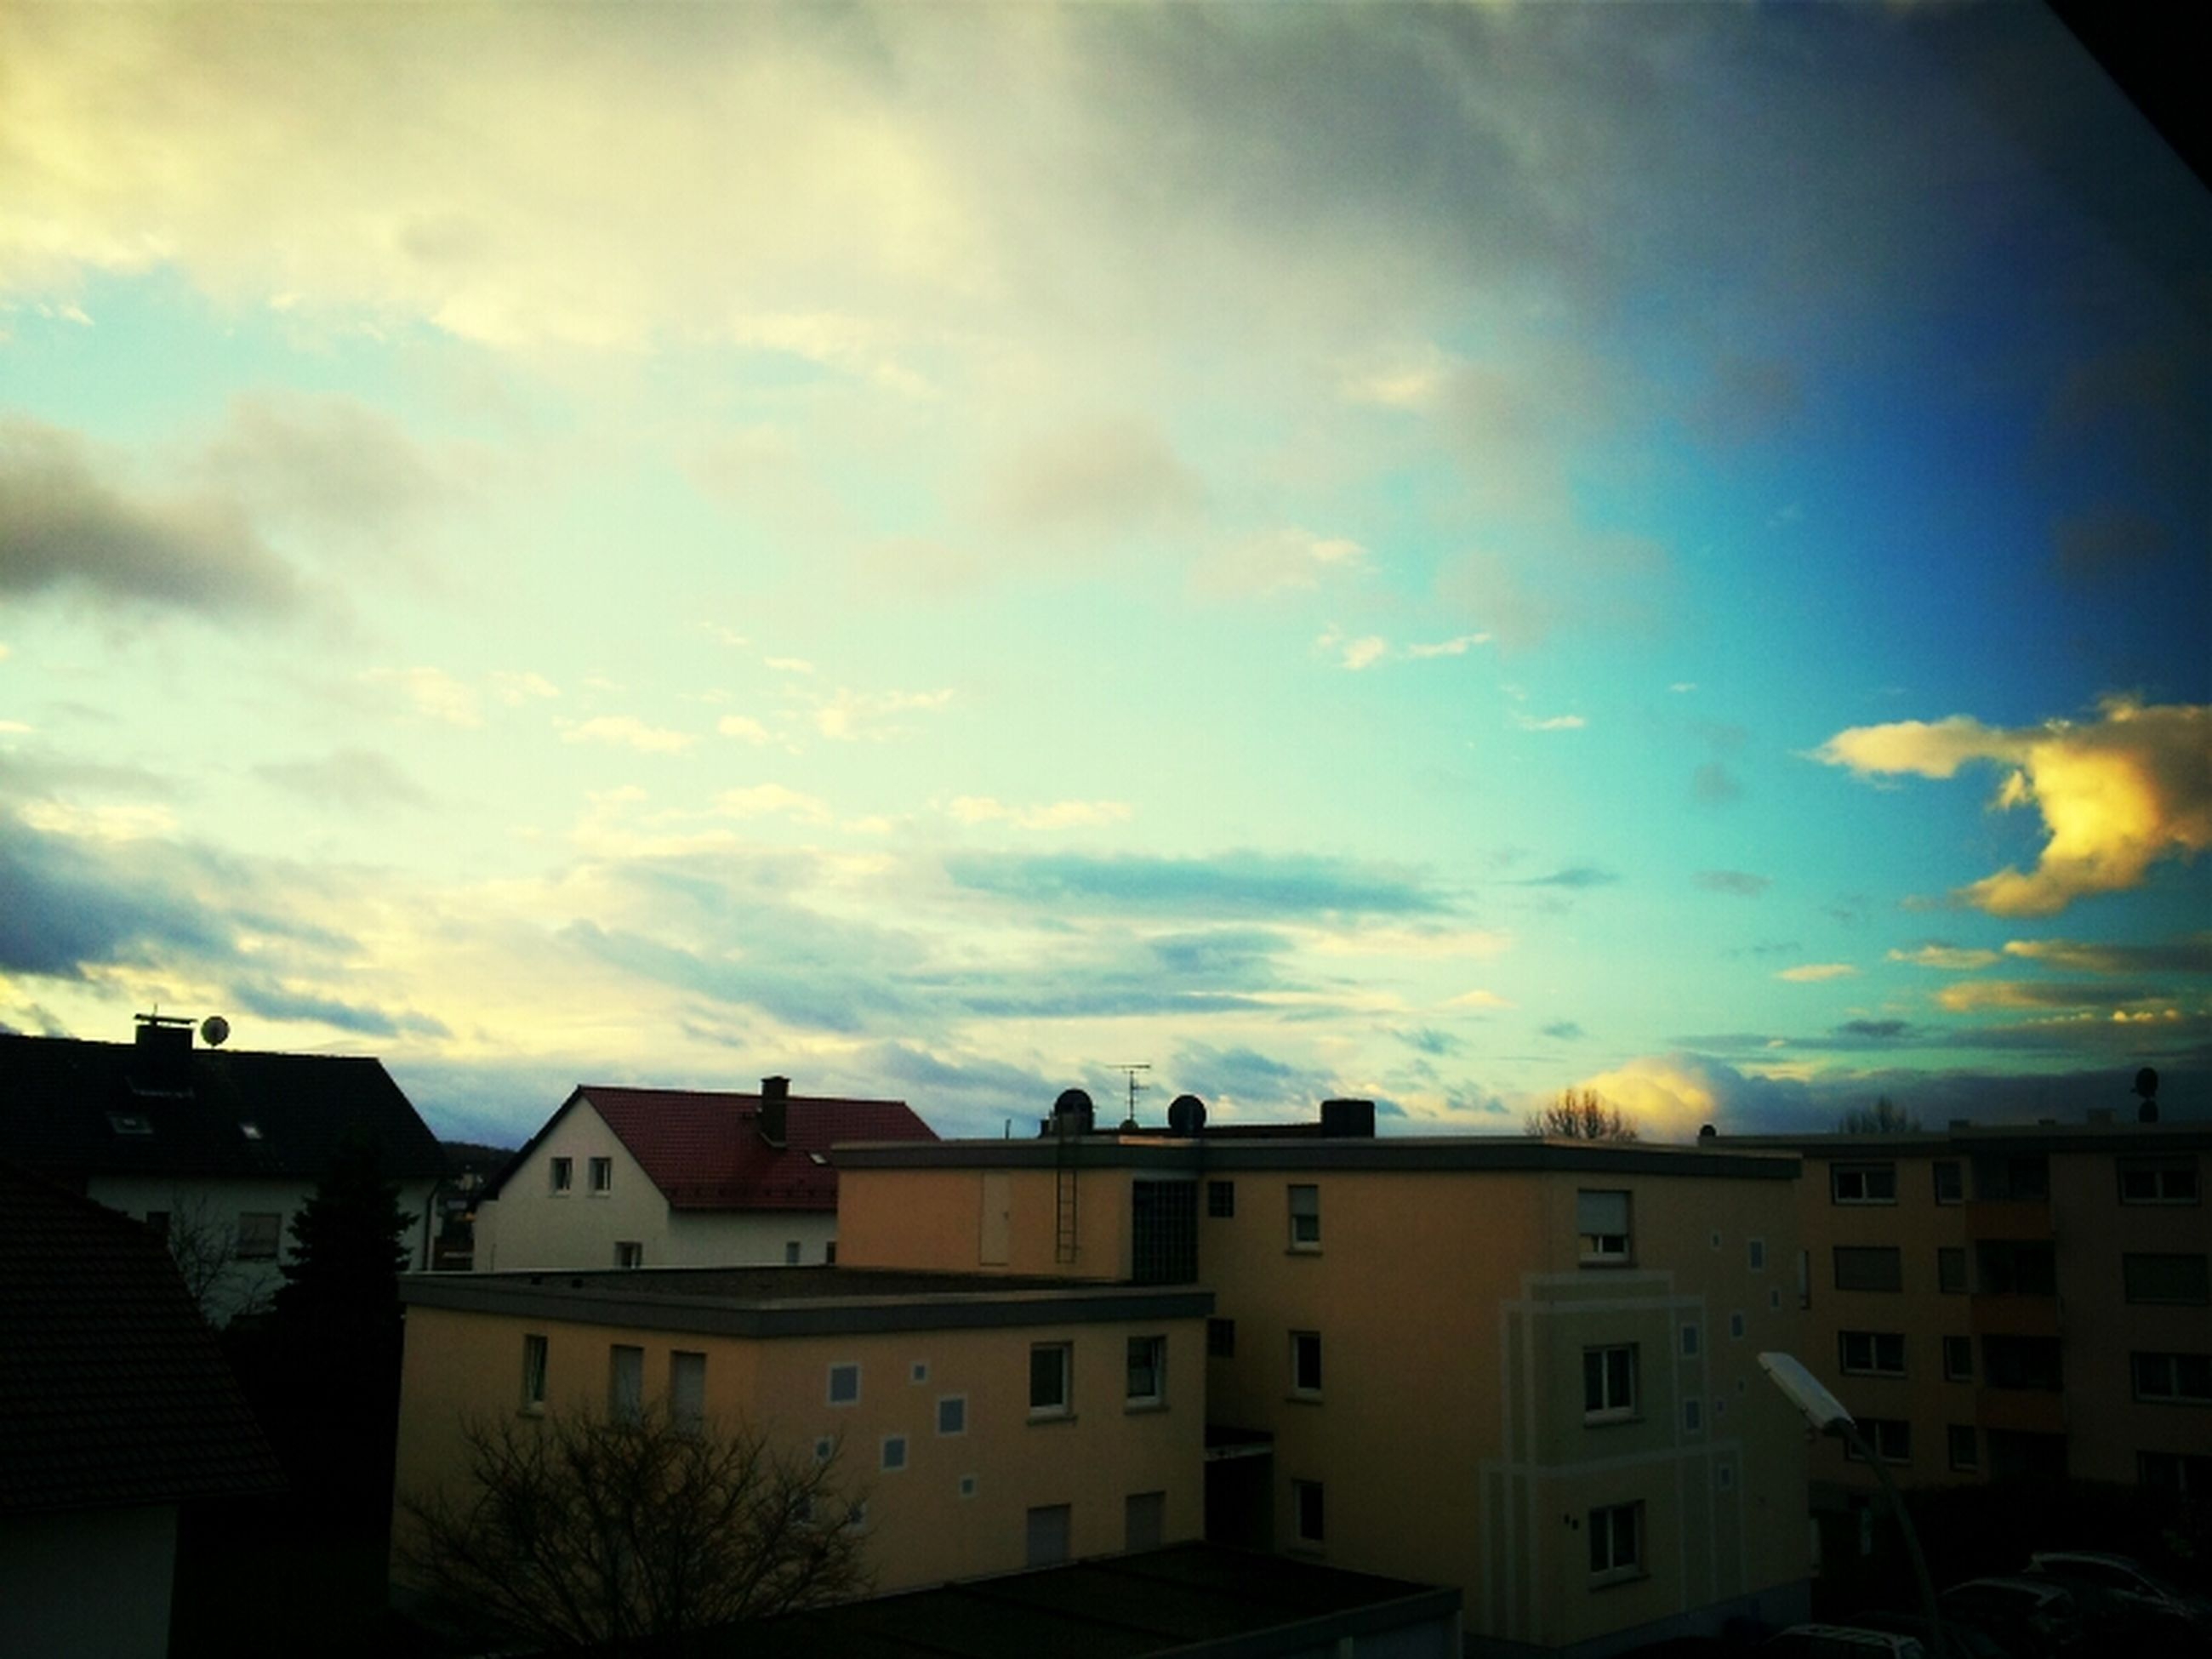 building exterior, architecture, built structure, sky, residential structure, house, residential building, cloud - sky, sunset, residential district, city, cloudy, cloud, town, building, outdoors, no people, roof, dusk, low angle view